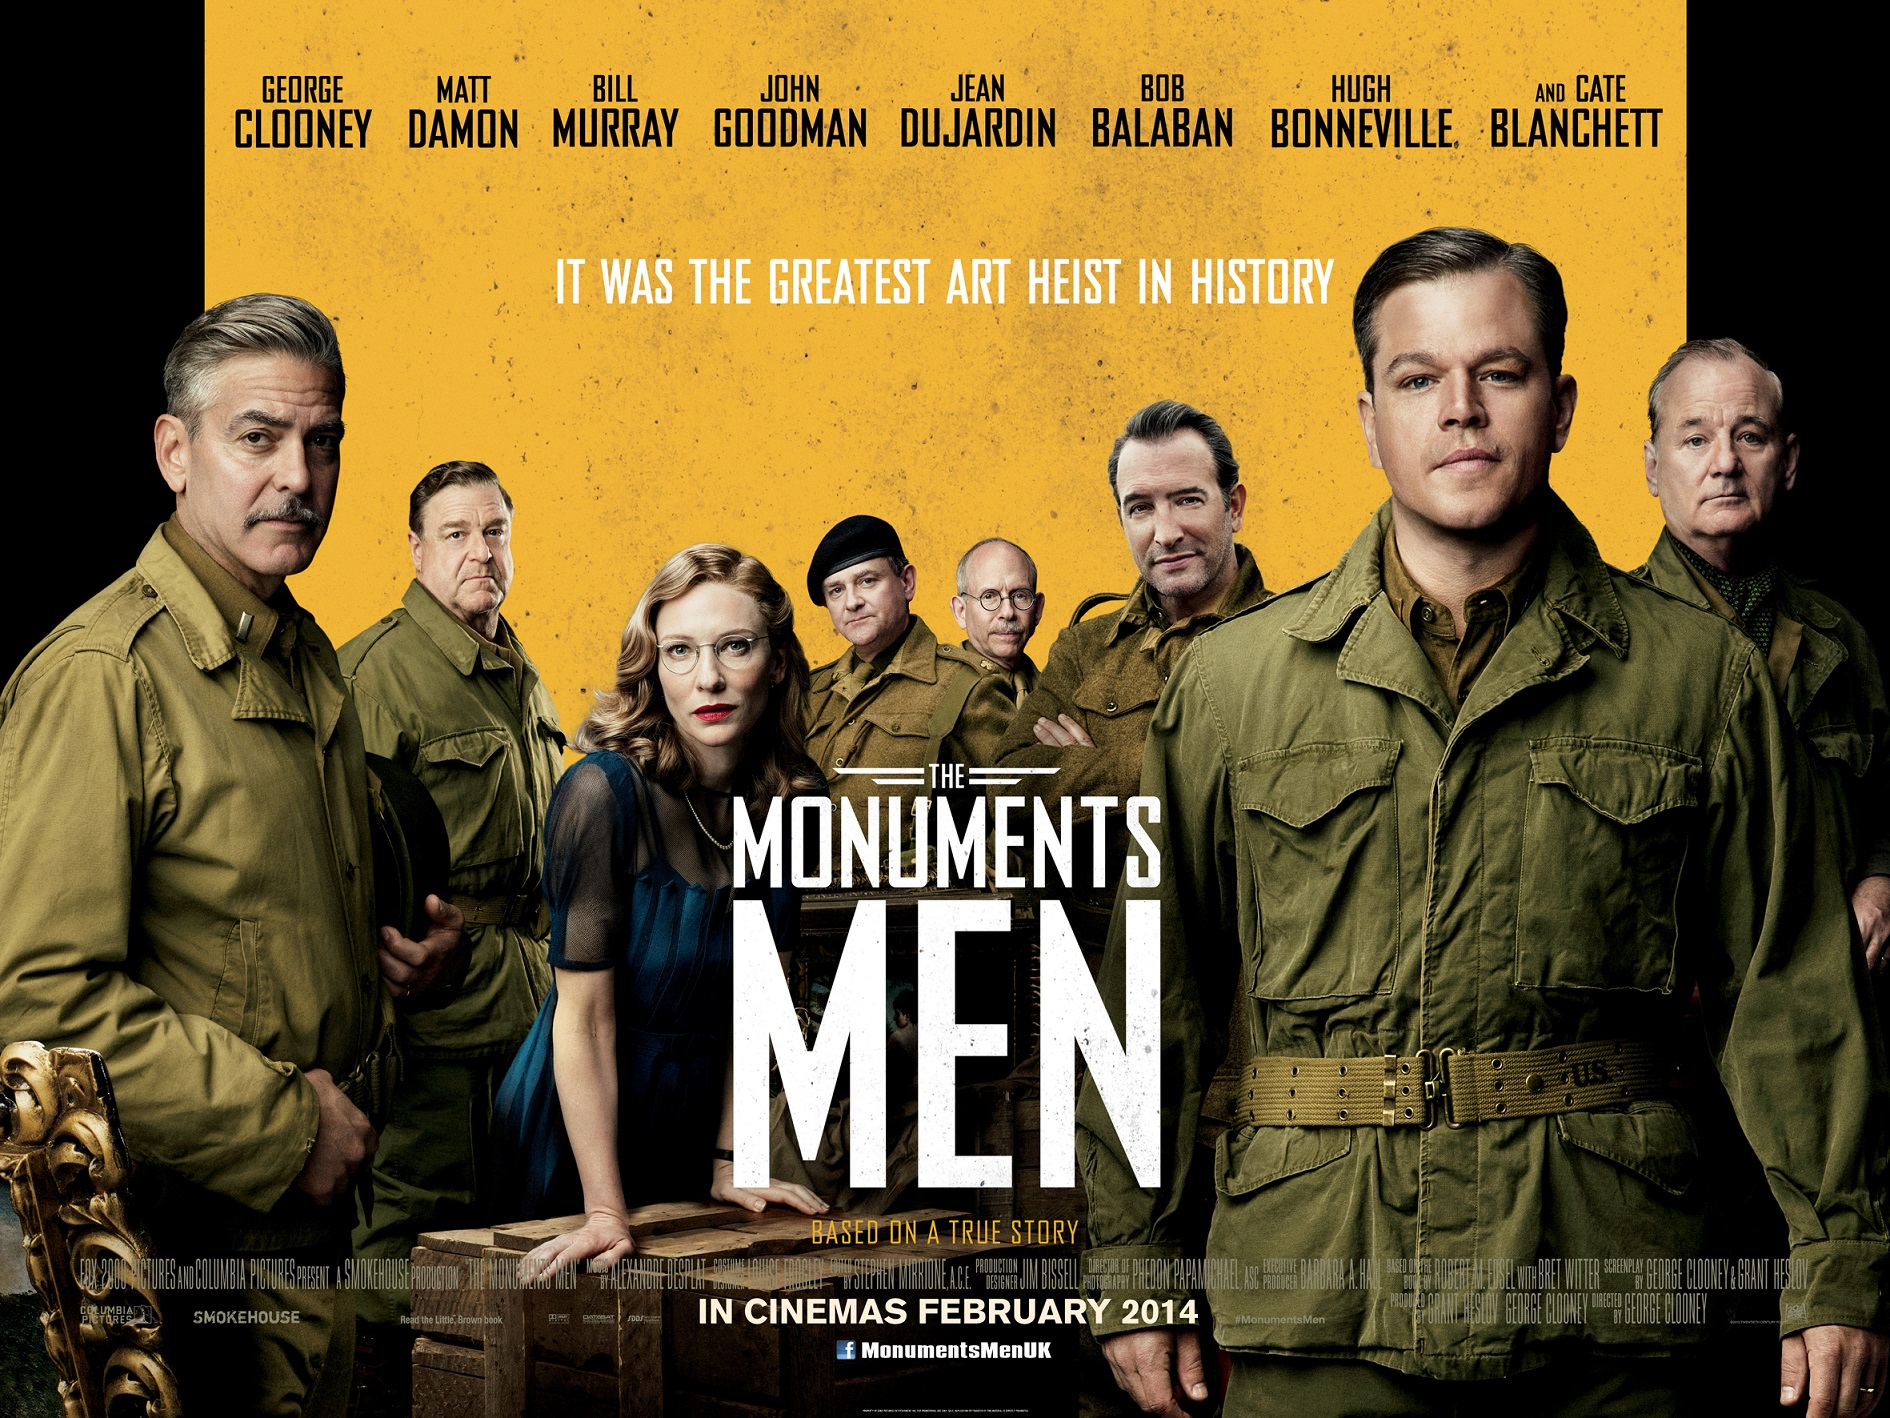 The Real Monuments Men Names